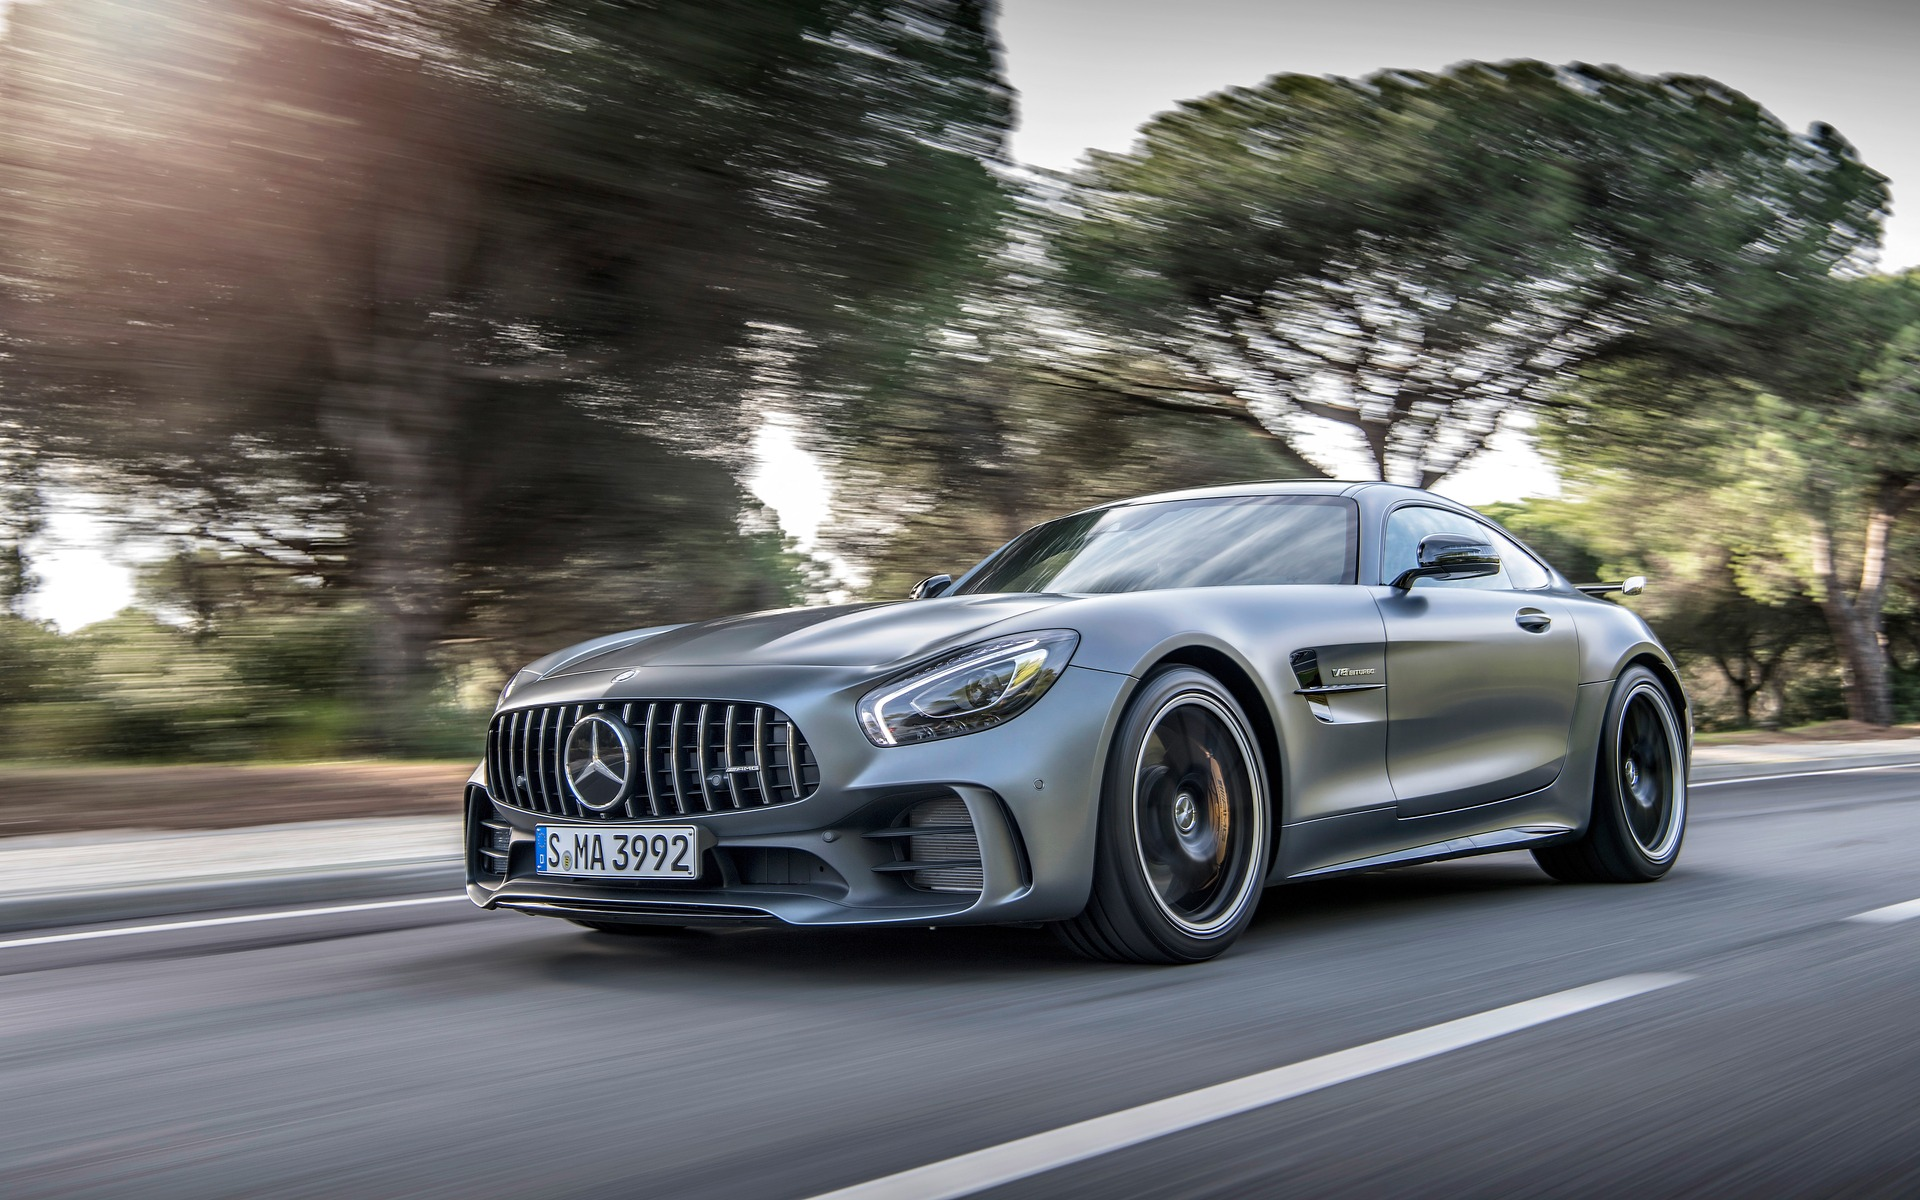 2018 Mercedes Benz Amg Gt C Roadster Specifications The Car Guide